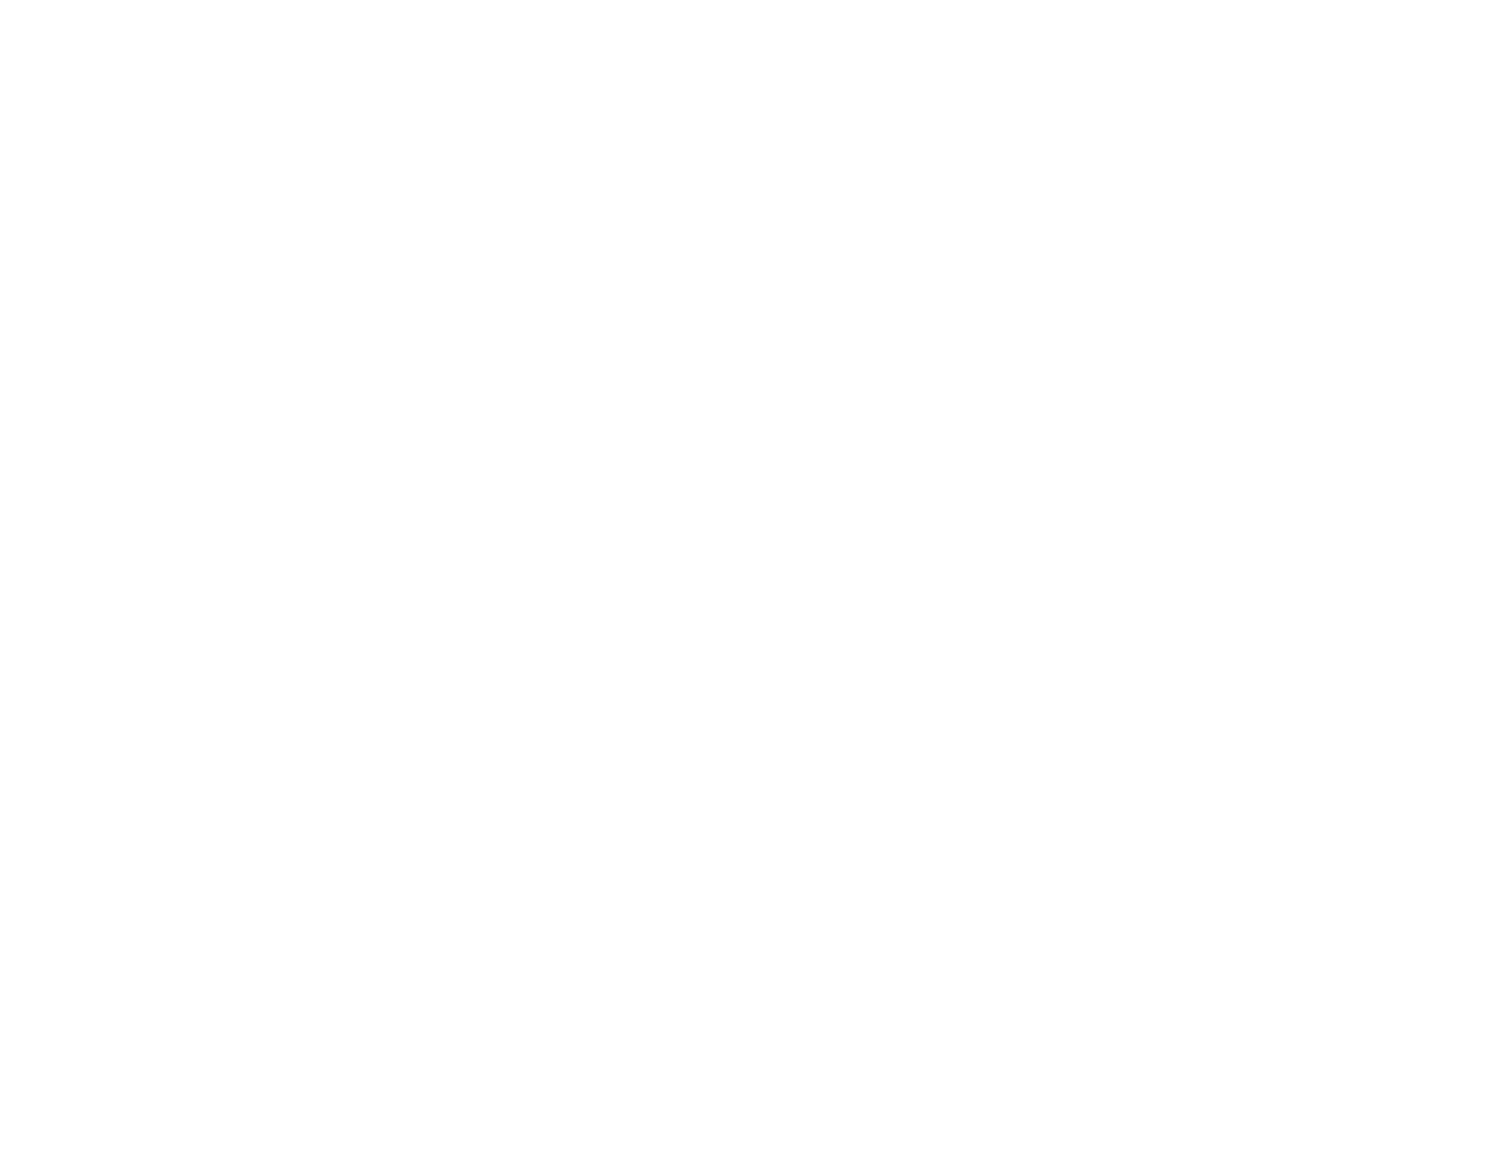 The Oaks School of Leadership